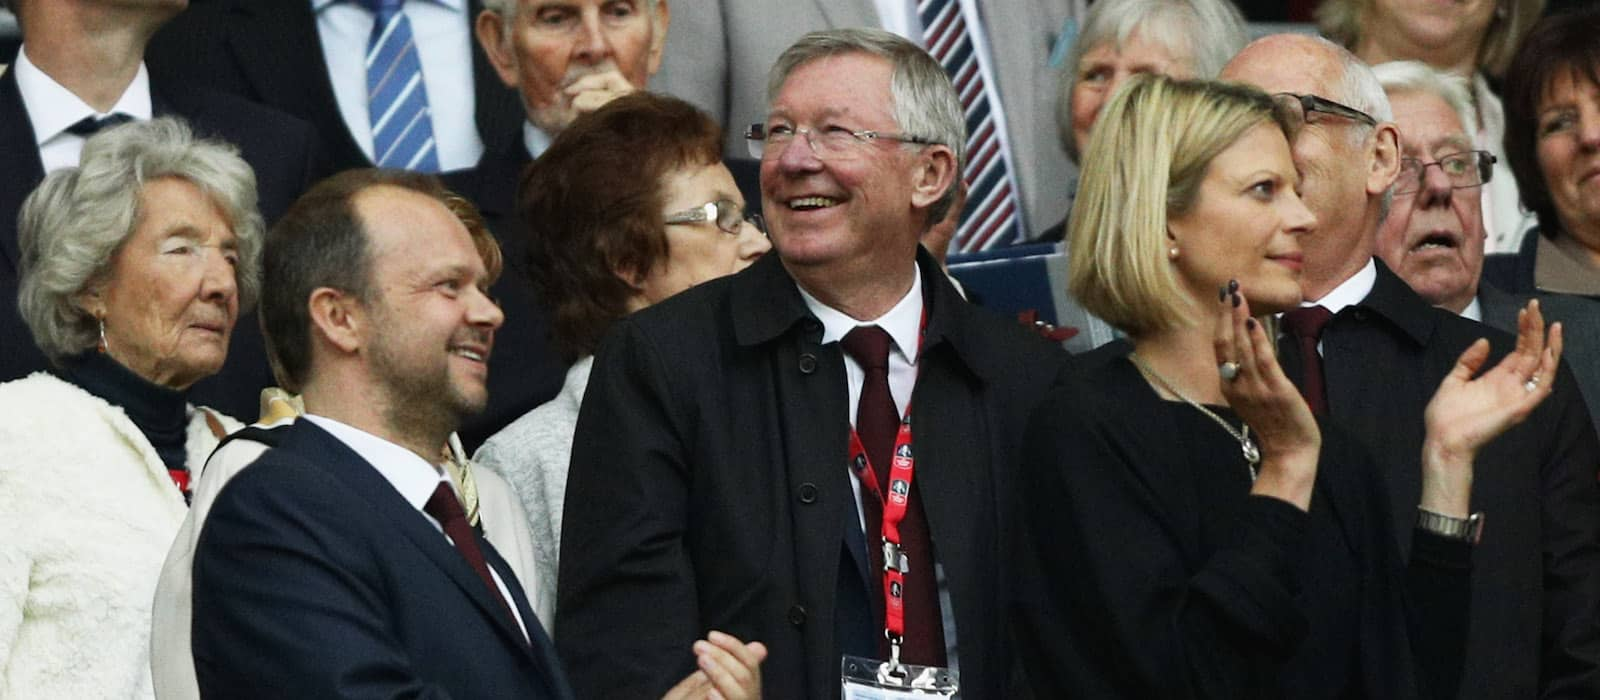 Owen Hargreaves explains how Sir Alex Ferguson motivated his players